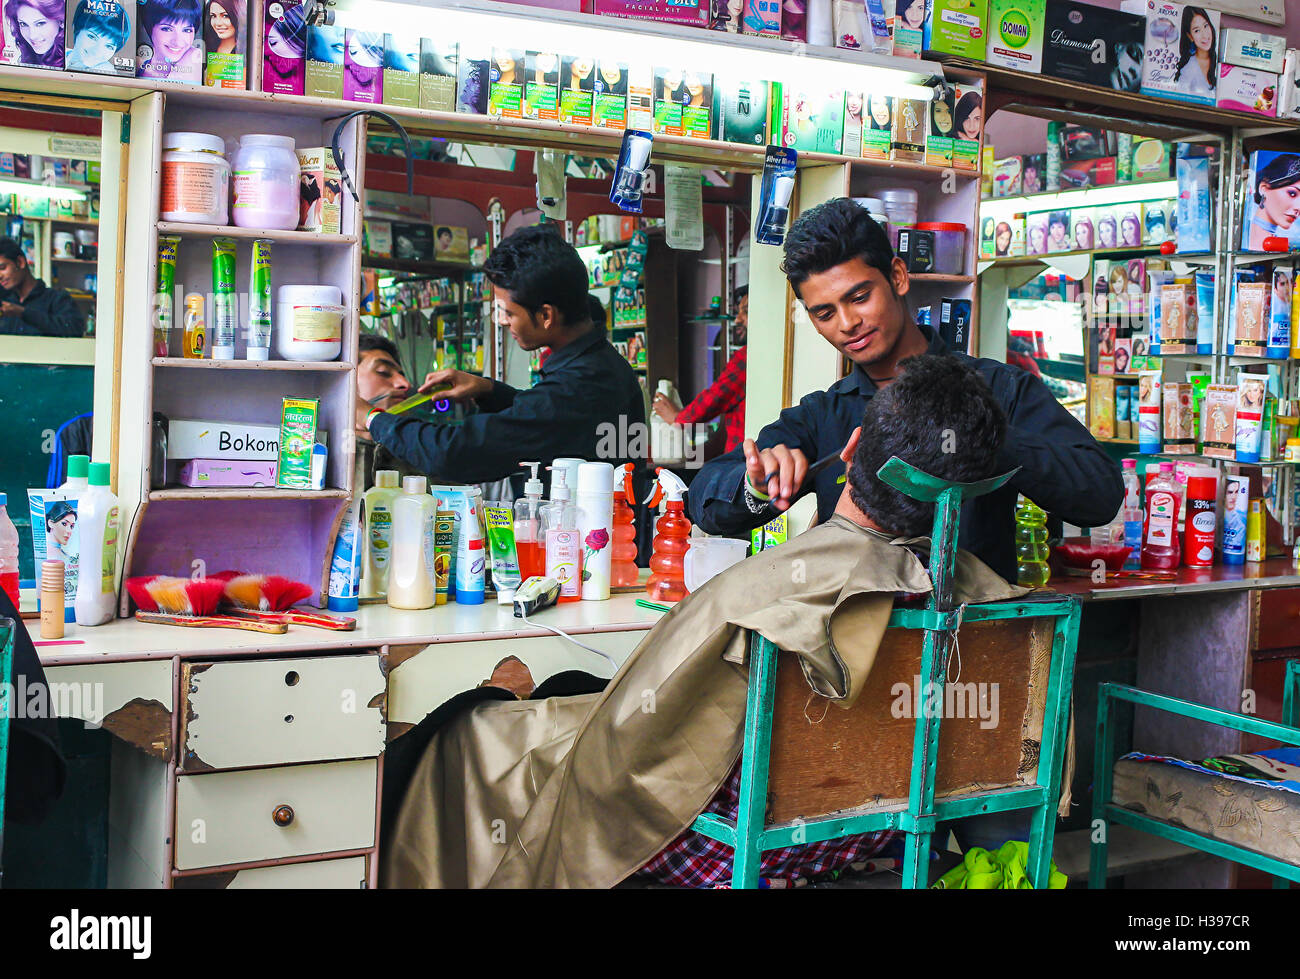 The barber shop in India Stock Photo